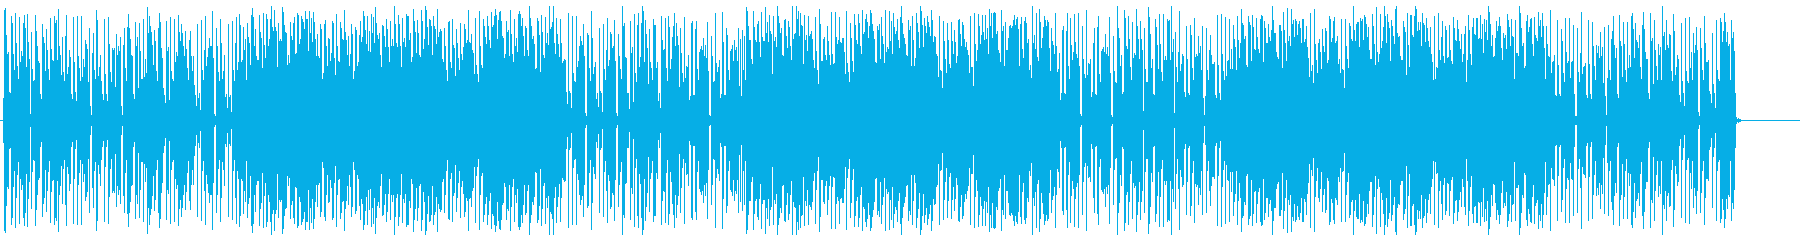 Pop and cute techno's reproduced waveform